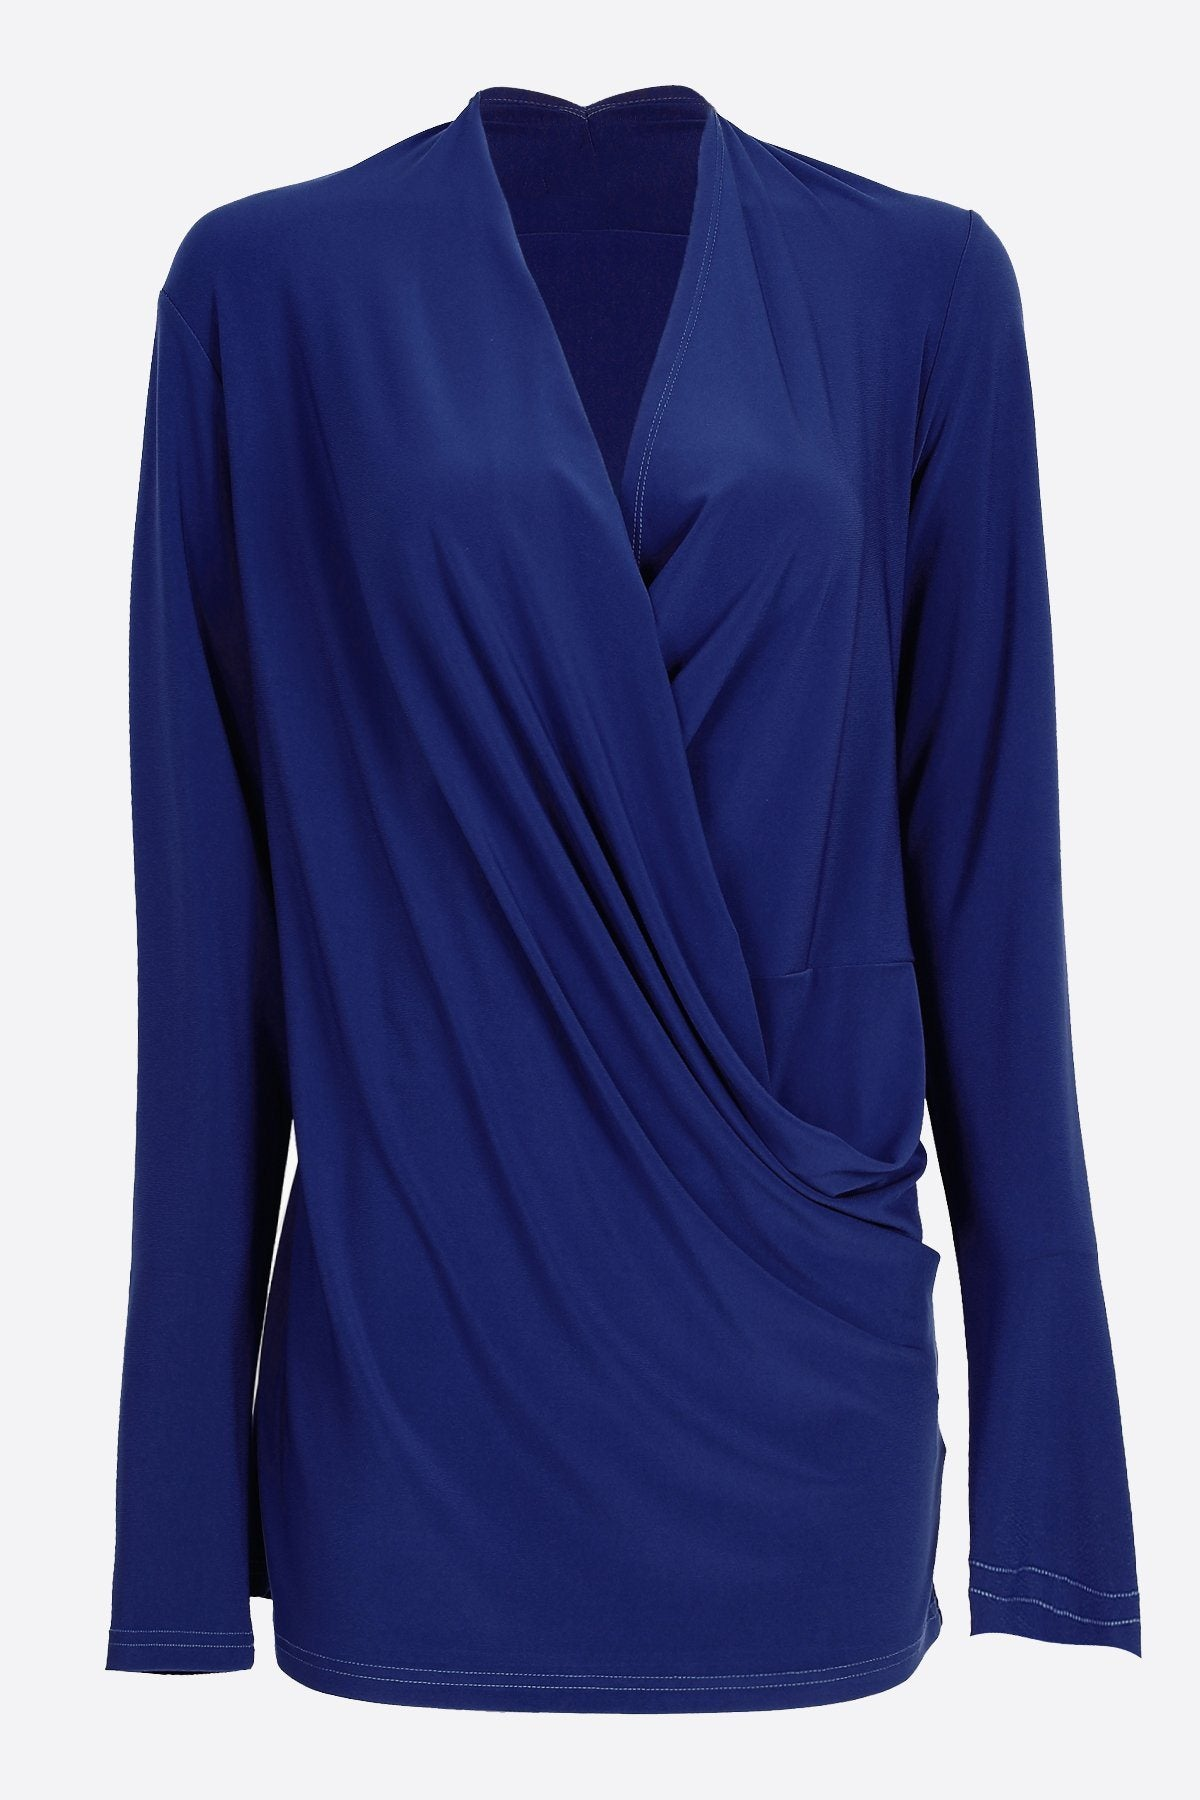 Long Sleeve Crossover Top - Women's Clothing -ROSARINI